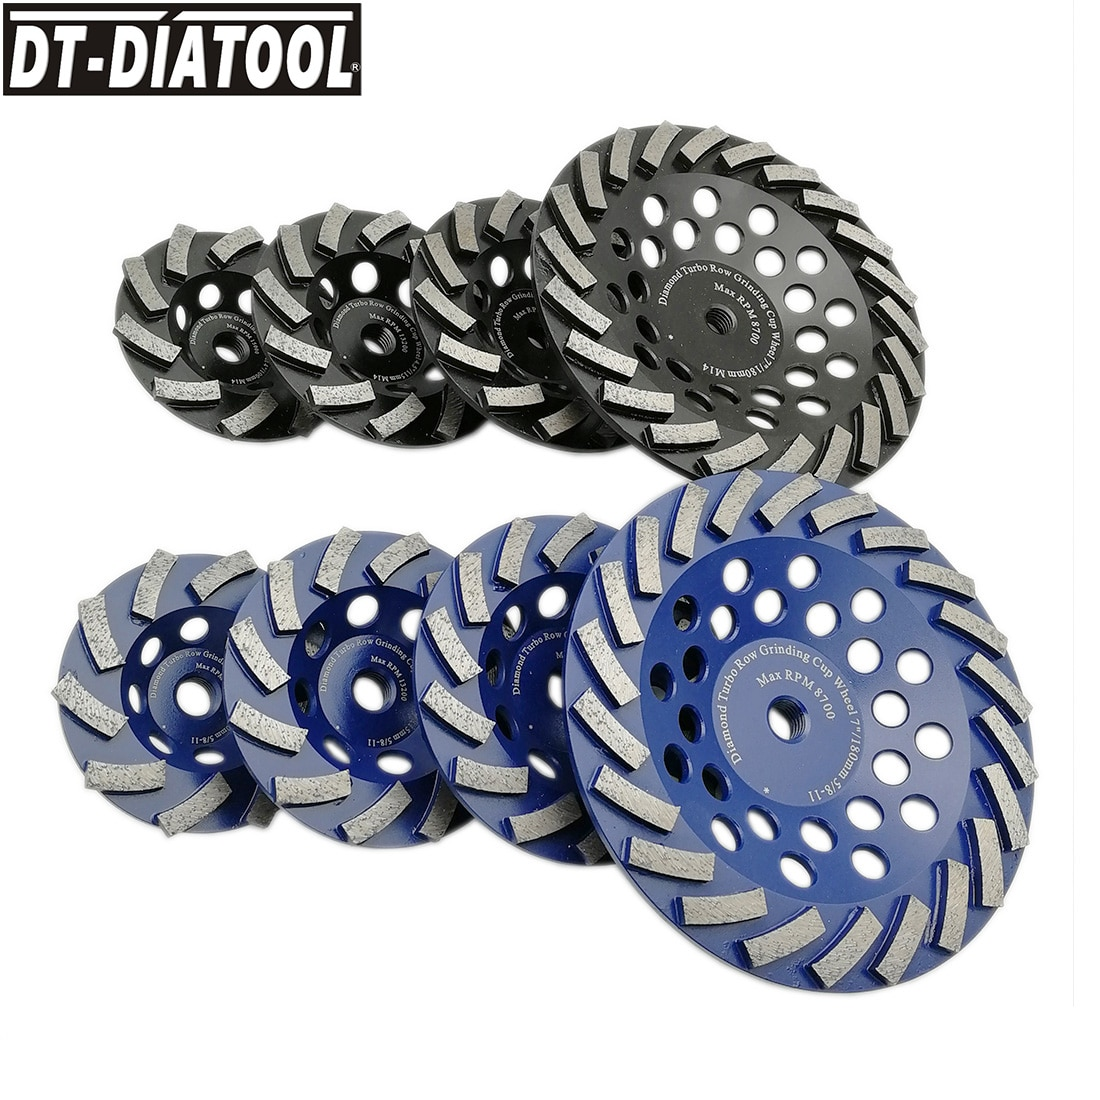 DT-DIATOOL 1pc Diamond Segmented Turbo Cup Grinding Wheel for Concrete Granite with M14 or 5/8-11 thread Dia 100/115/125/180mm